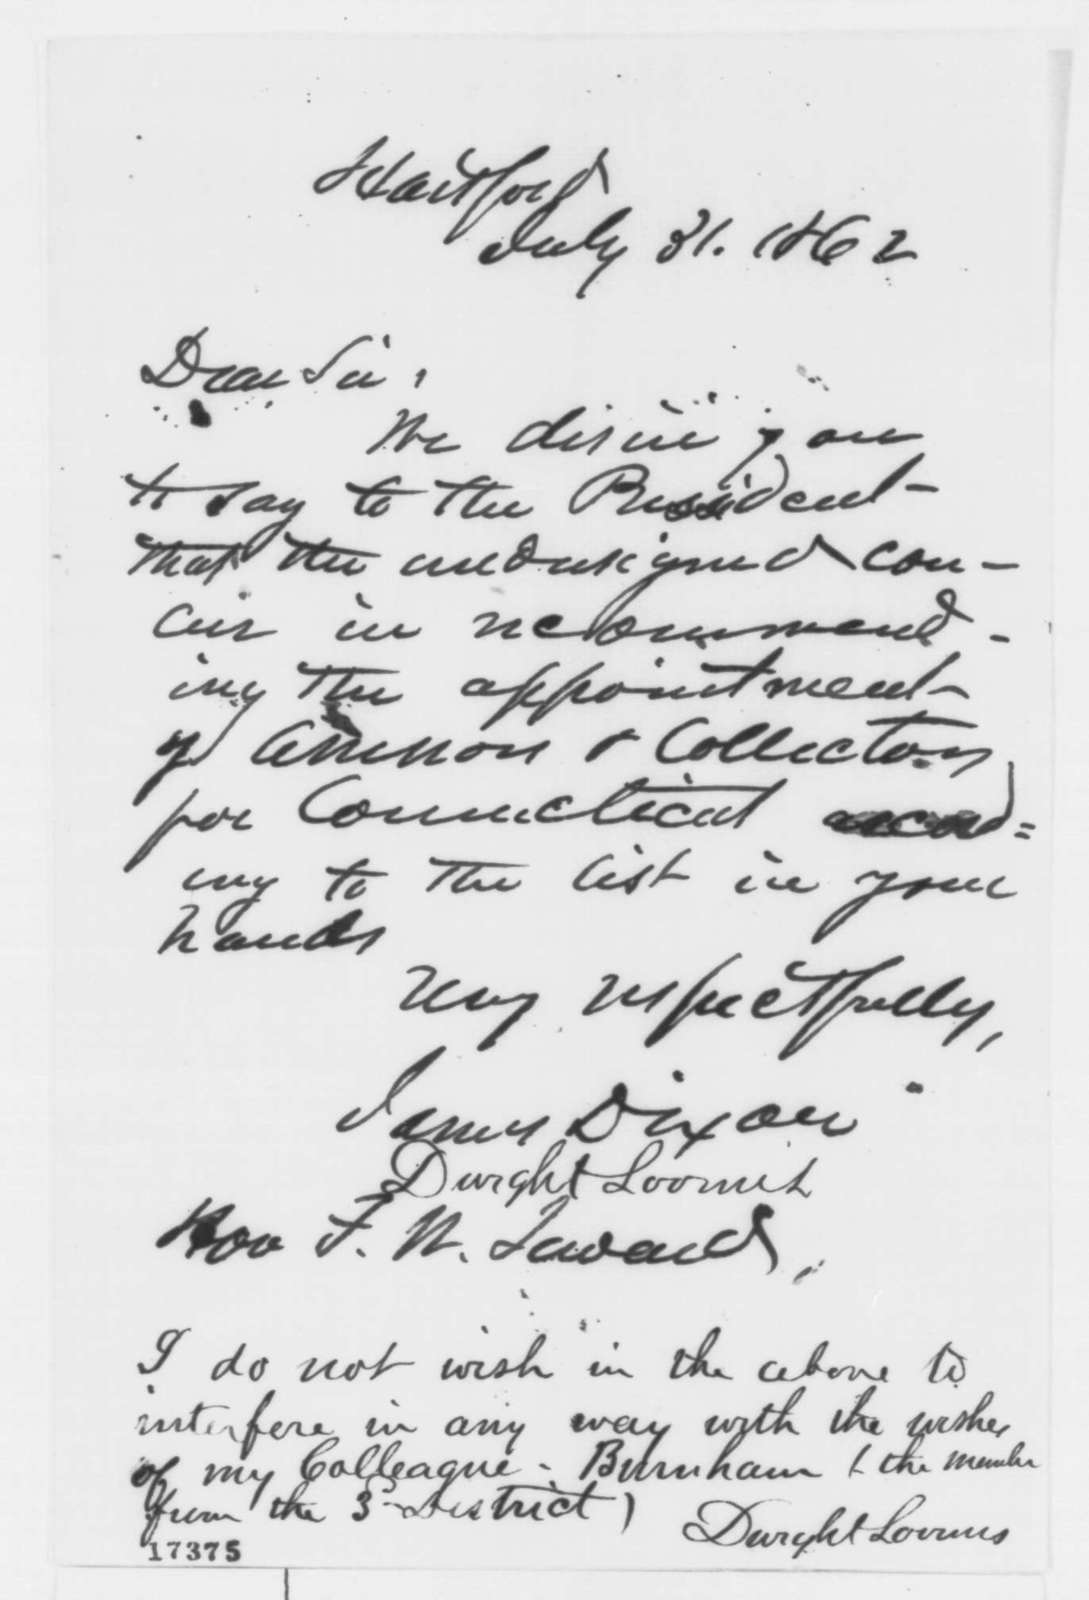 Dwight Loomis and James Dixon to Frederick W. Seward, Thursday, July 31, 1862  (Recommendation)